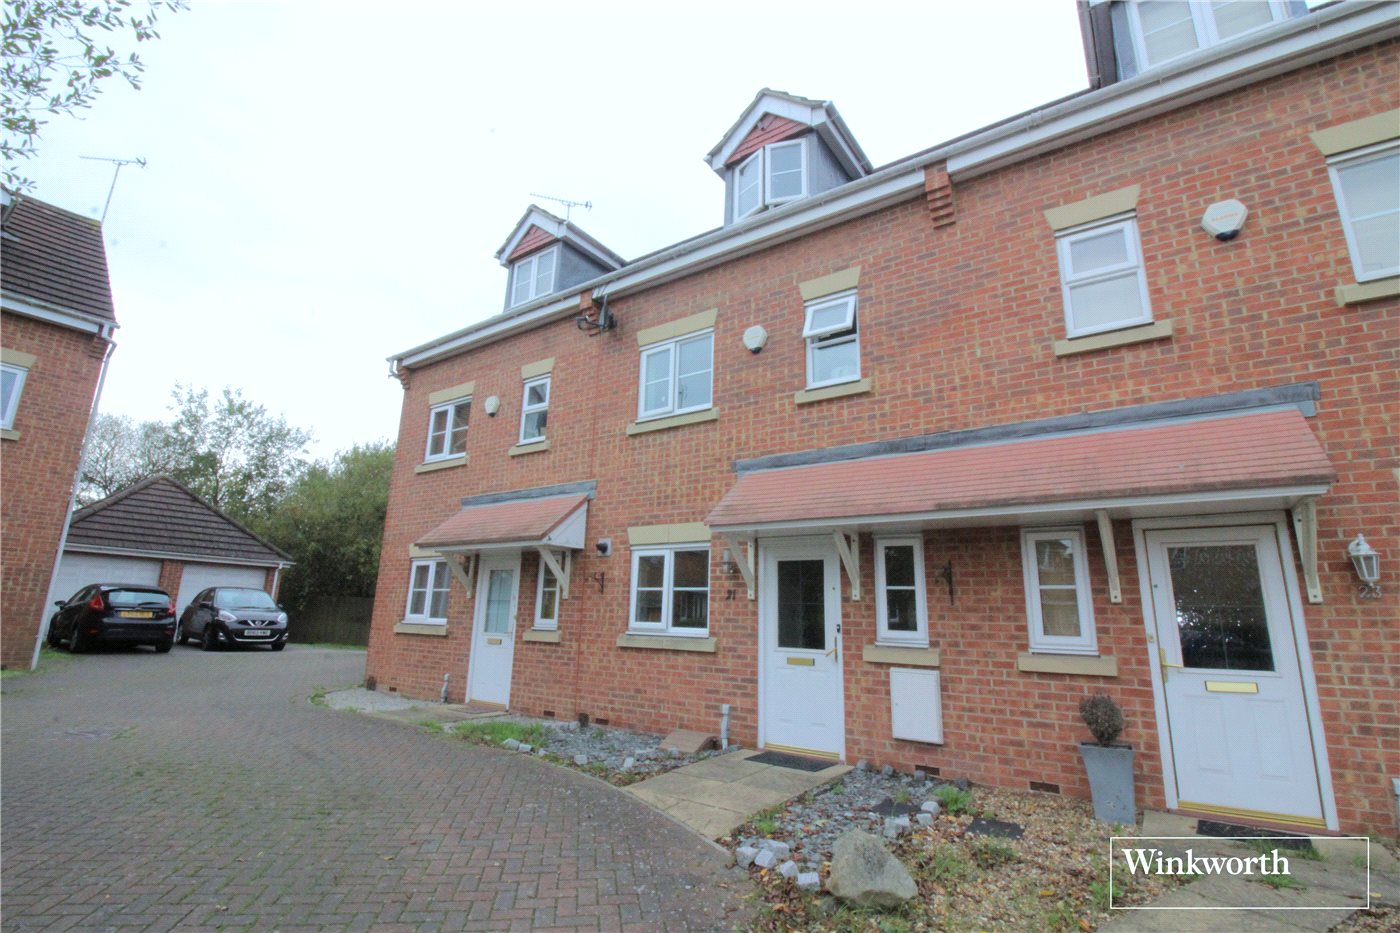 3 Bedrooms Terraced House for sale in Coleridge Way, Borehamwood, Hertfordshire, WD6